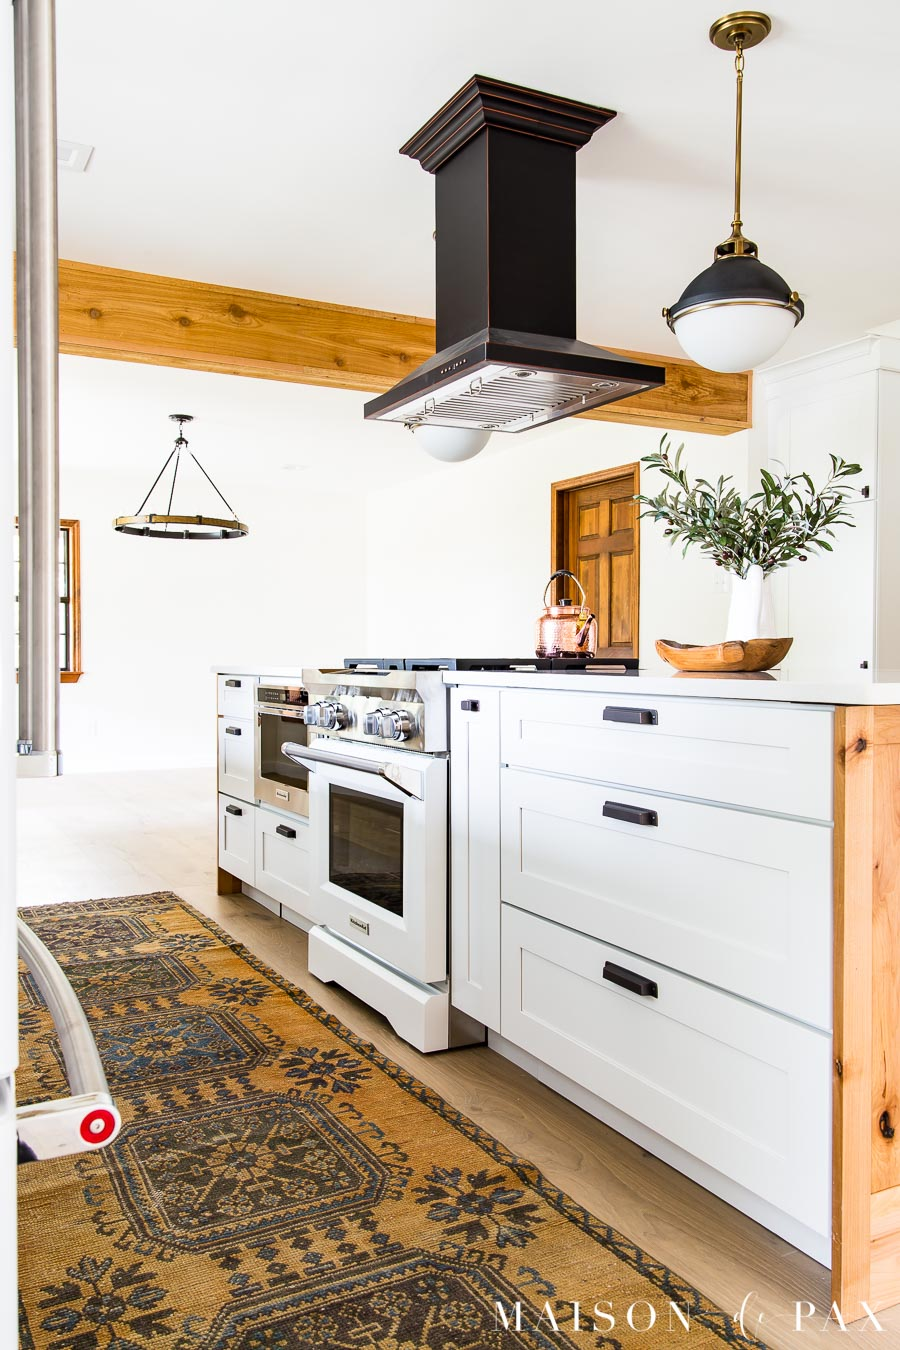 white kitchenaid appliances in an open concept modern farmhouse kitchen | Maison de Pax